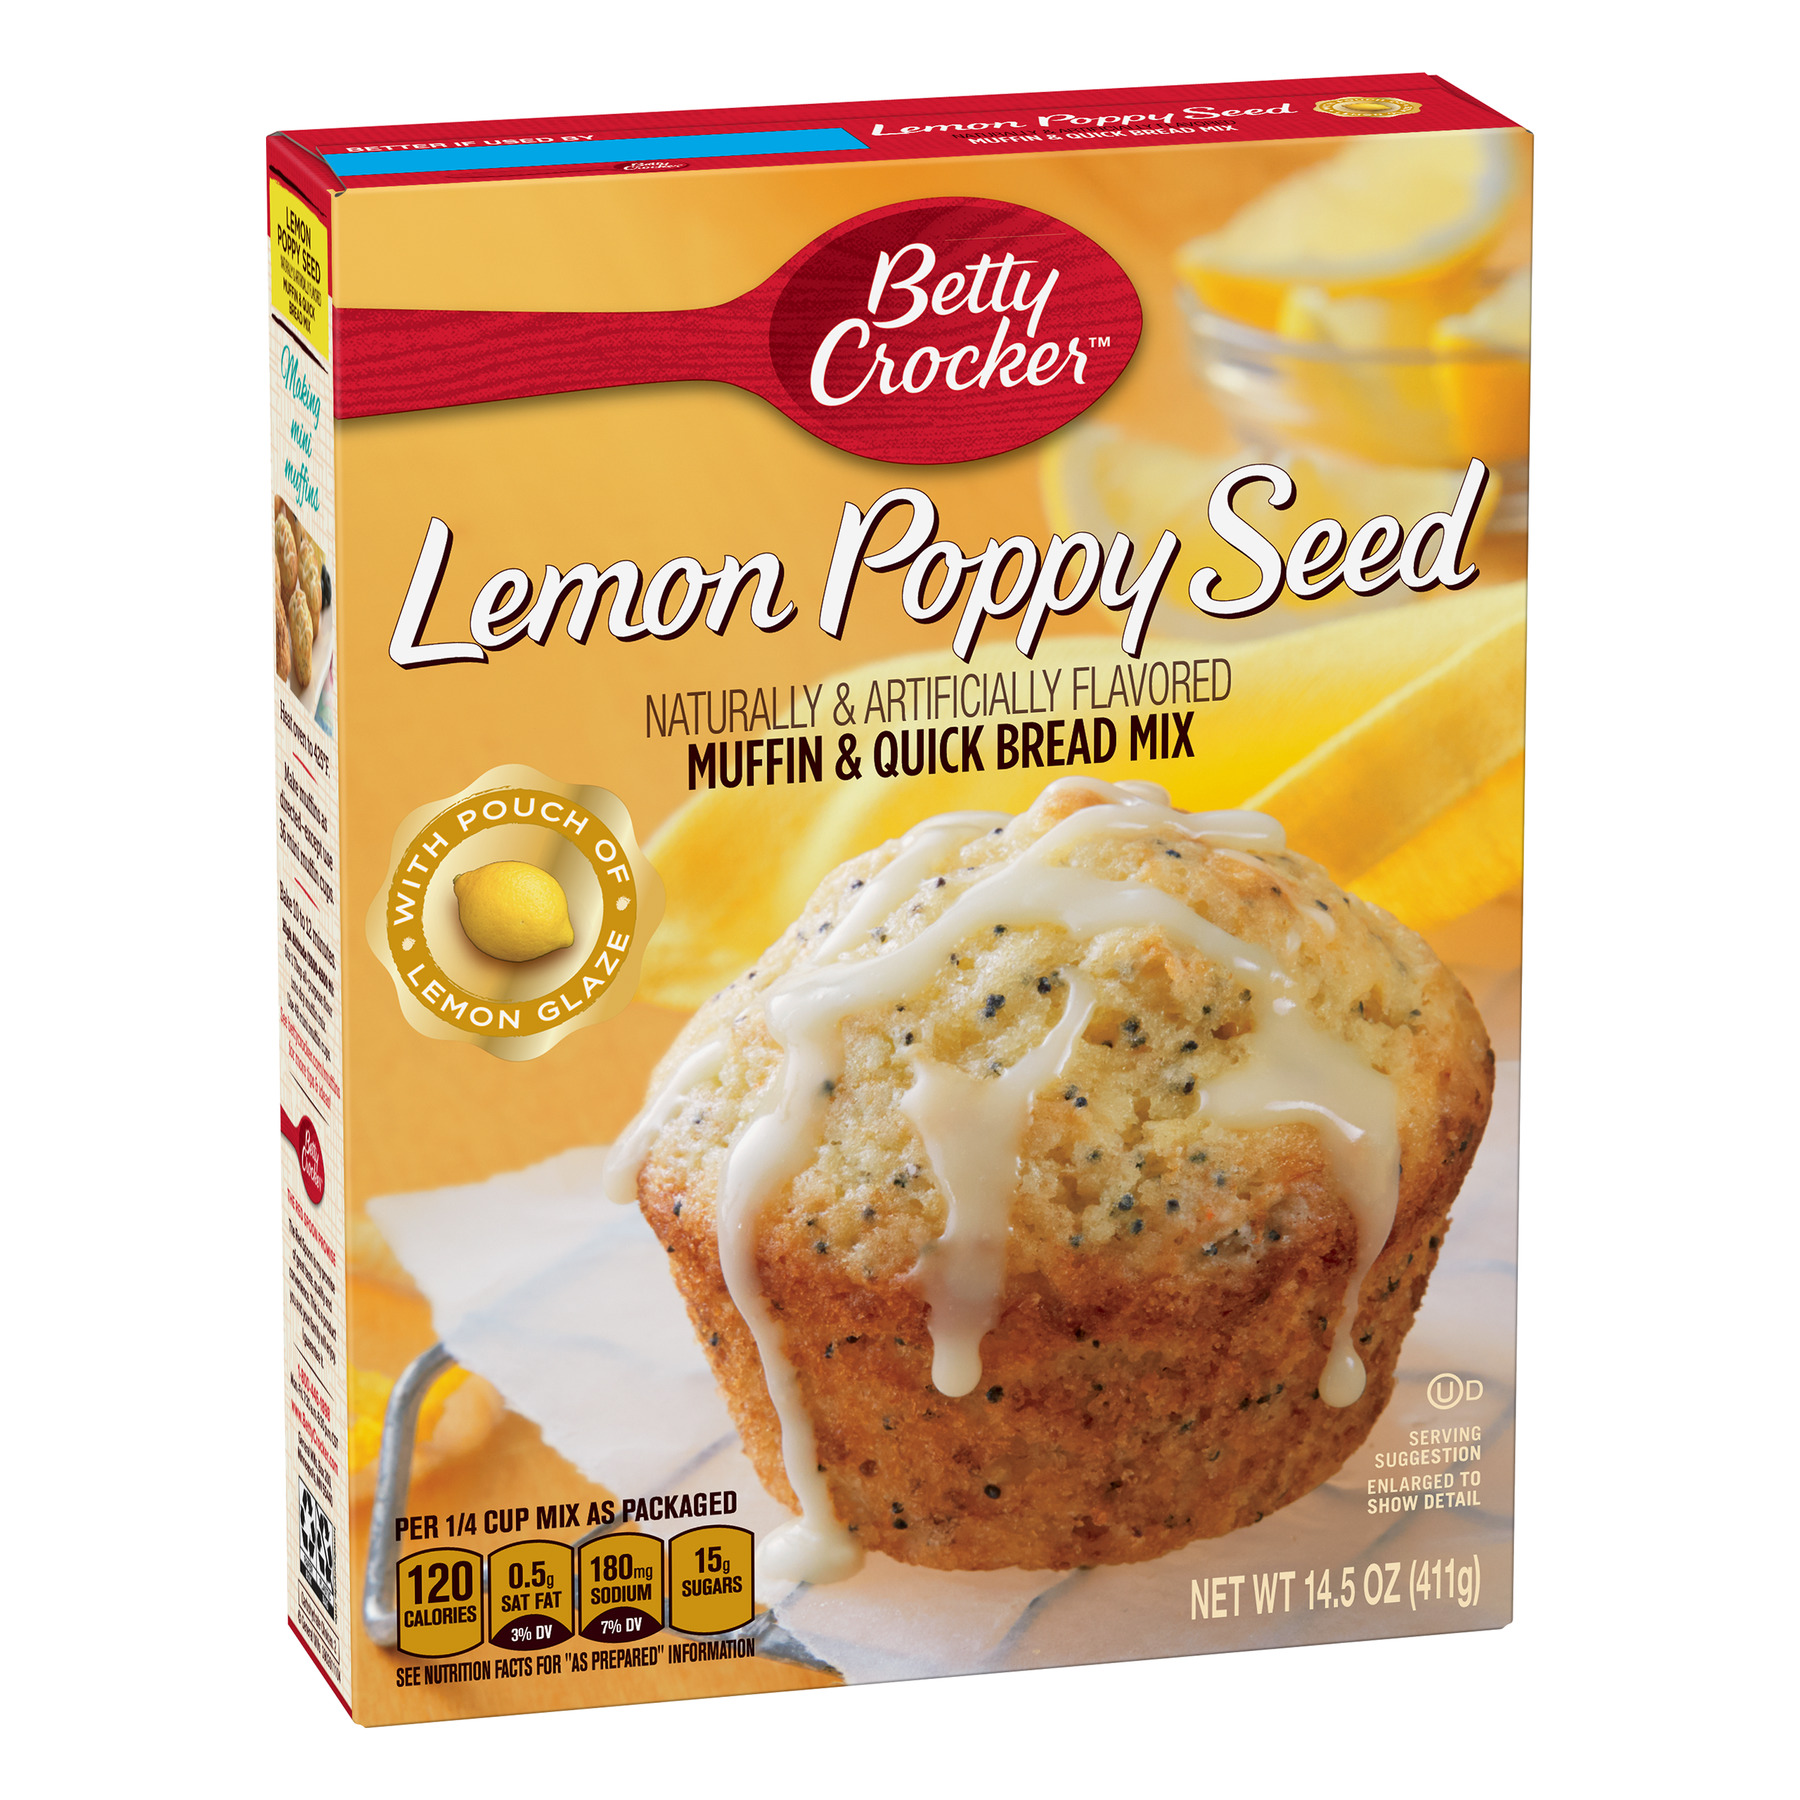 Betty Crocker Lemon Poppy Seed Muffin and Quick Bread Mix, 14.5 oz